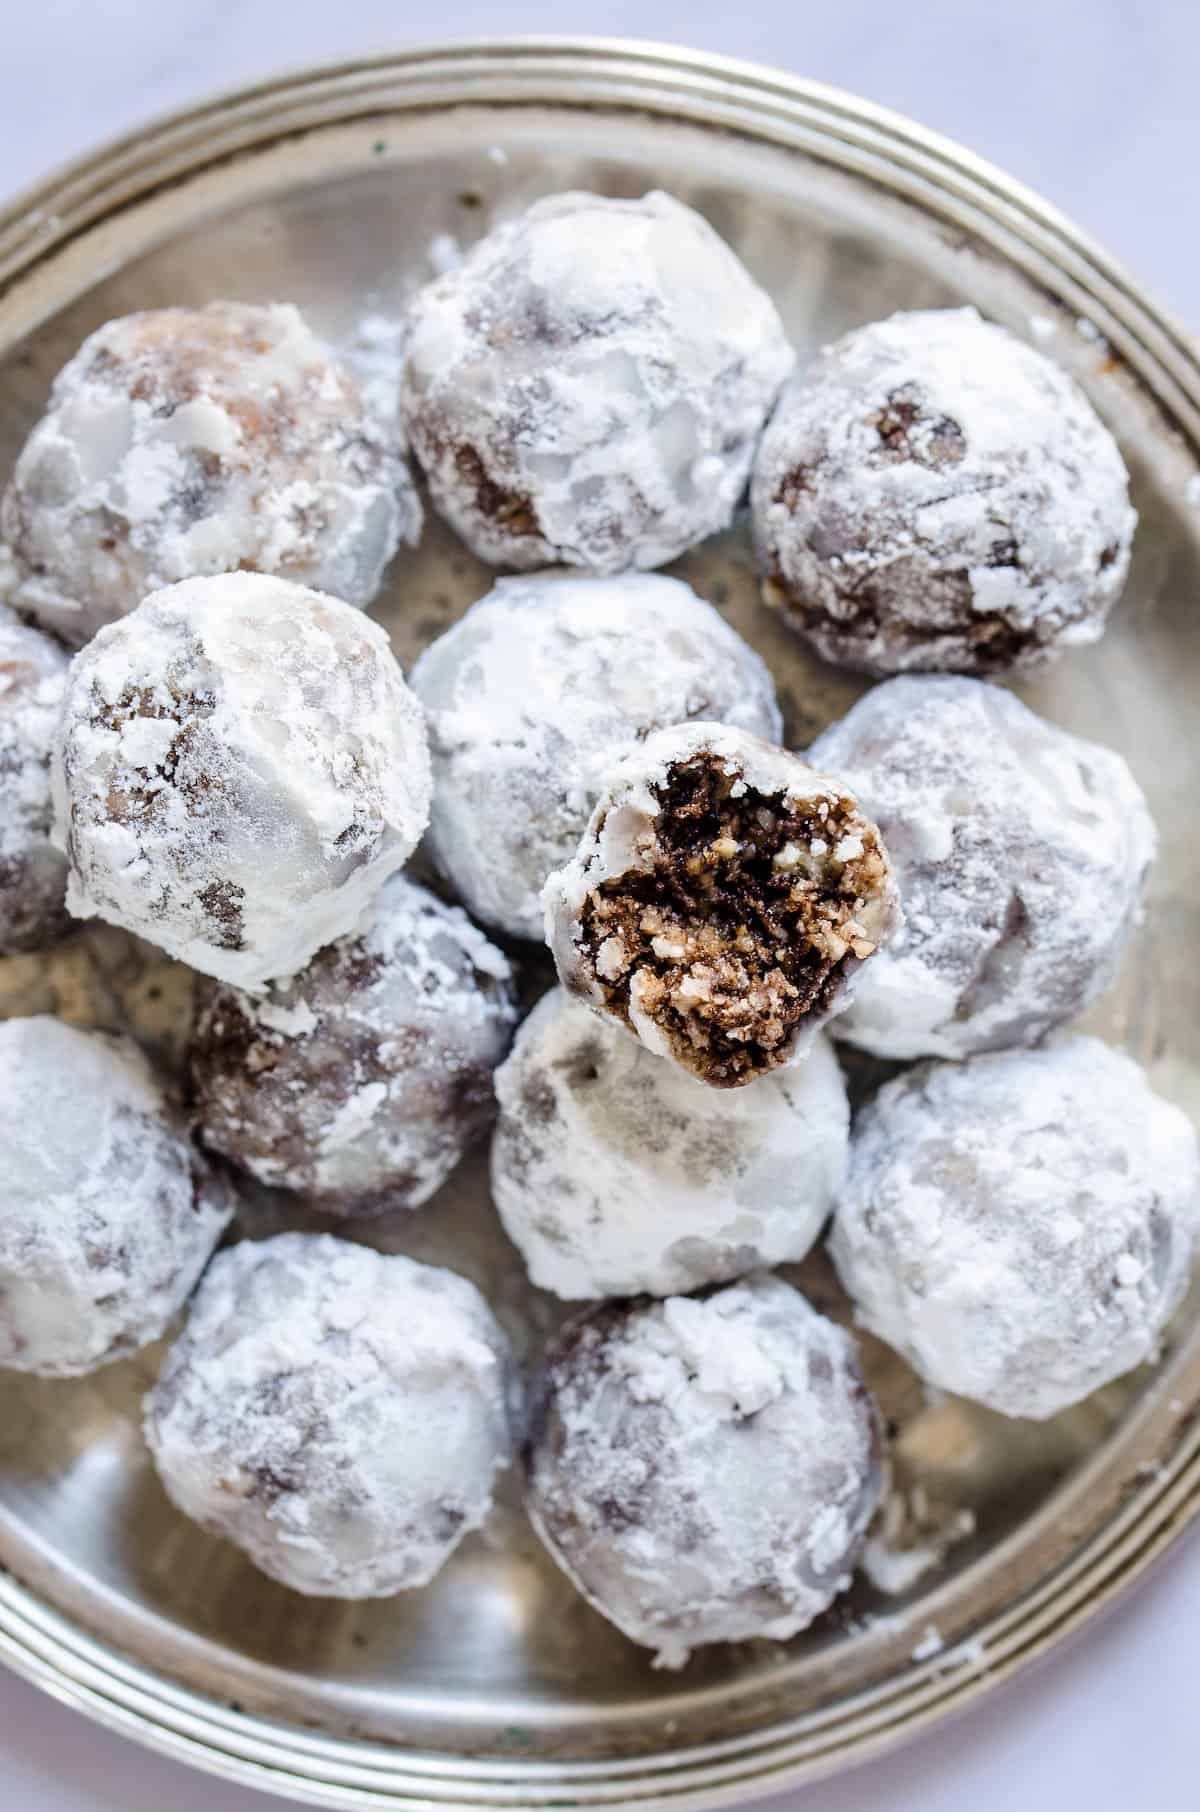 A silver plate with homemade bourbon balls